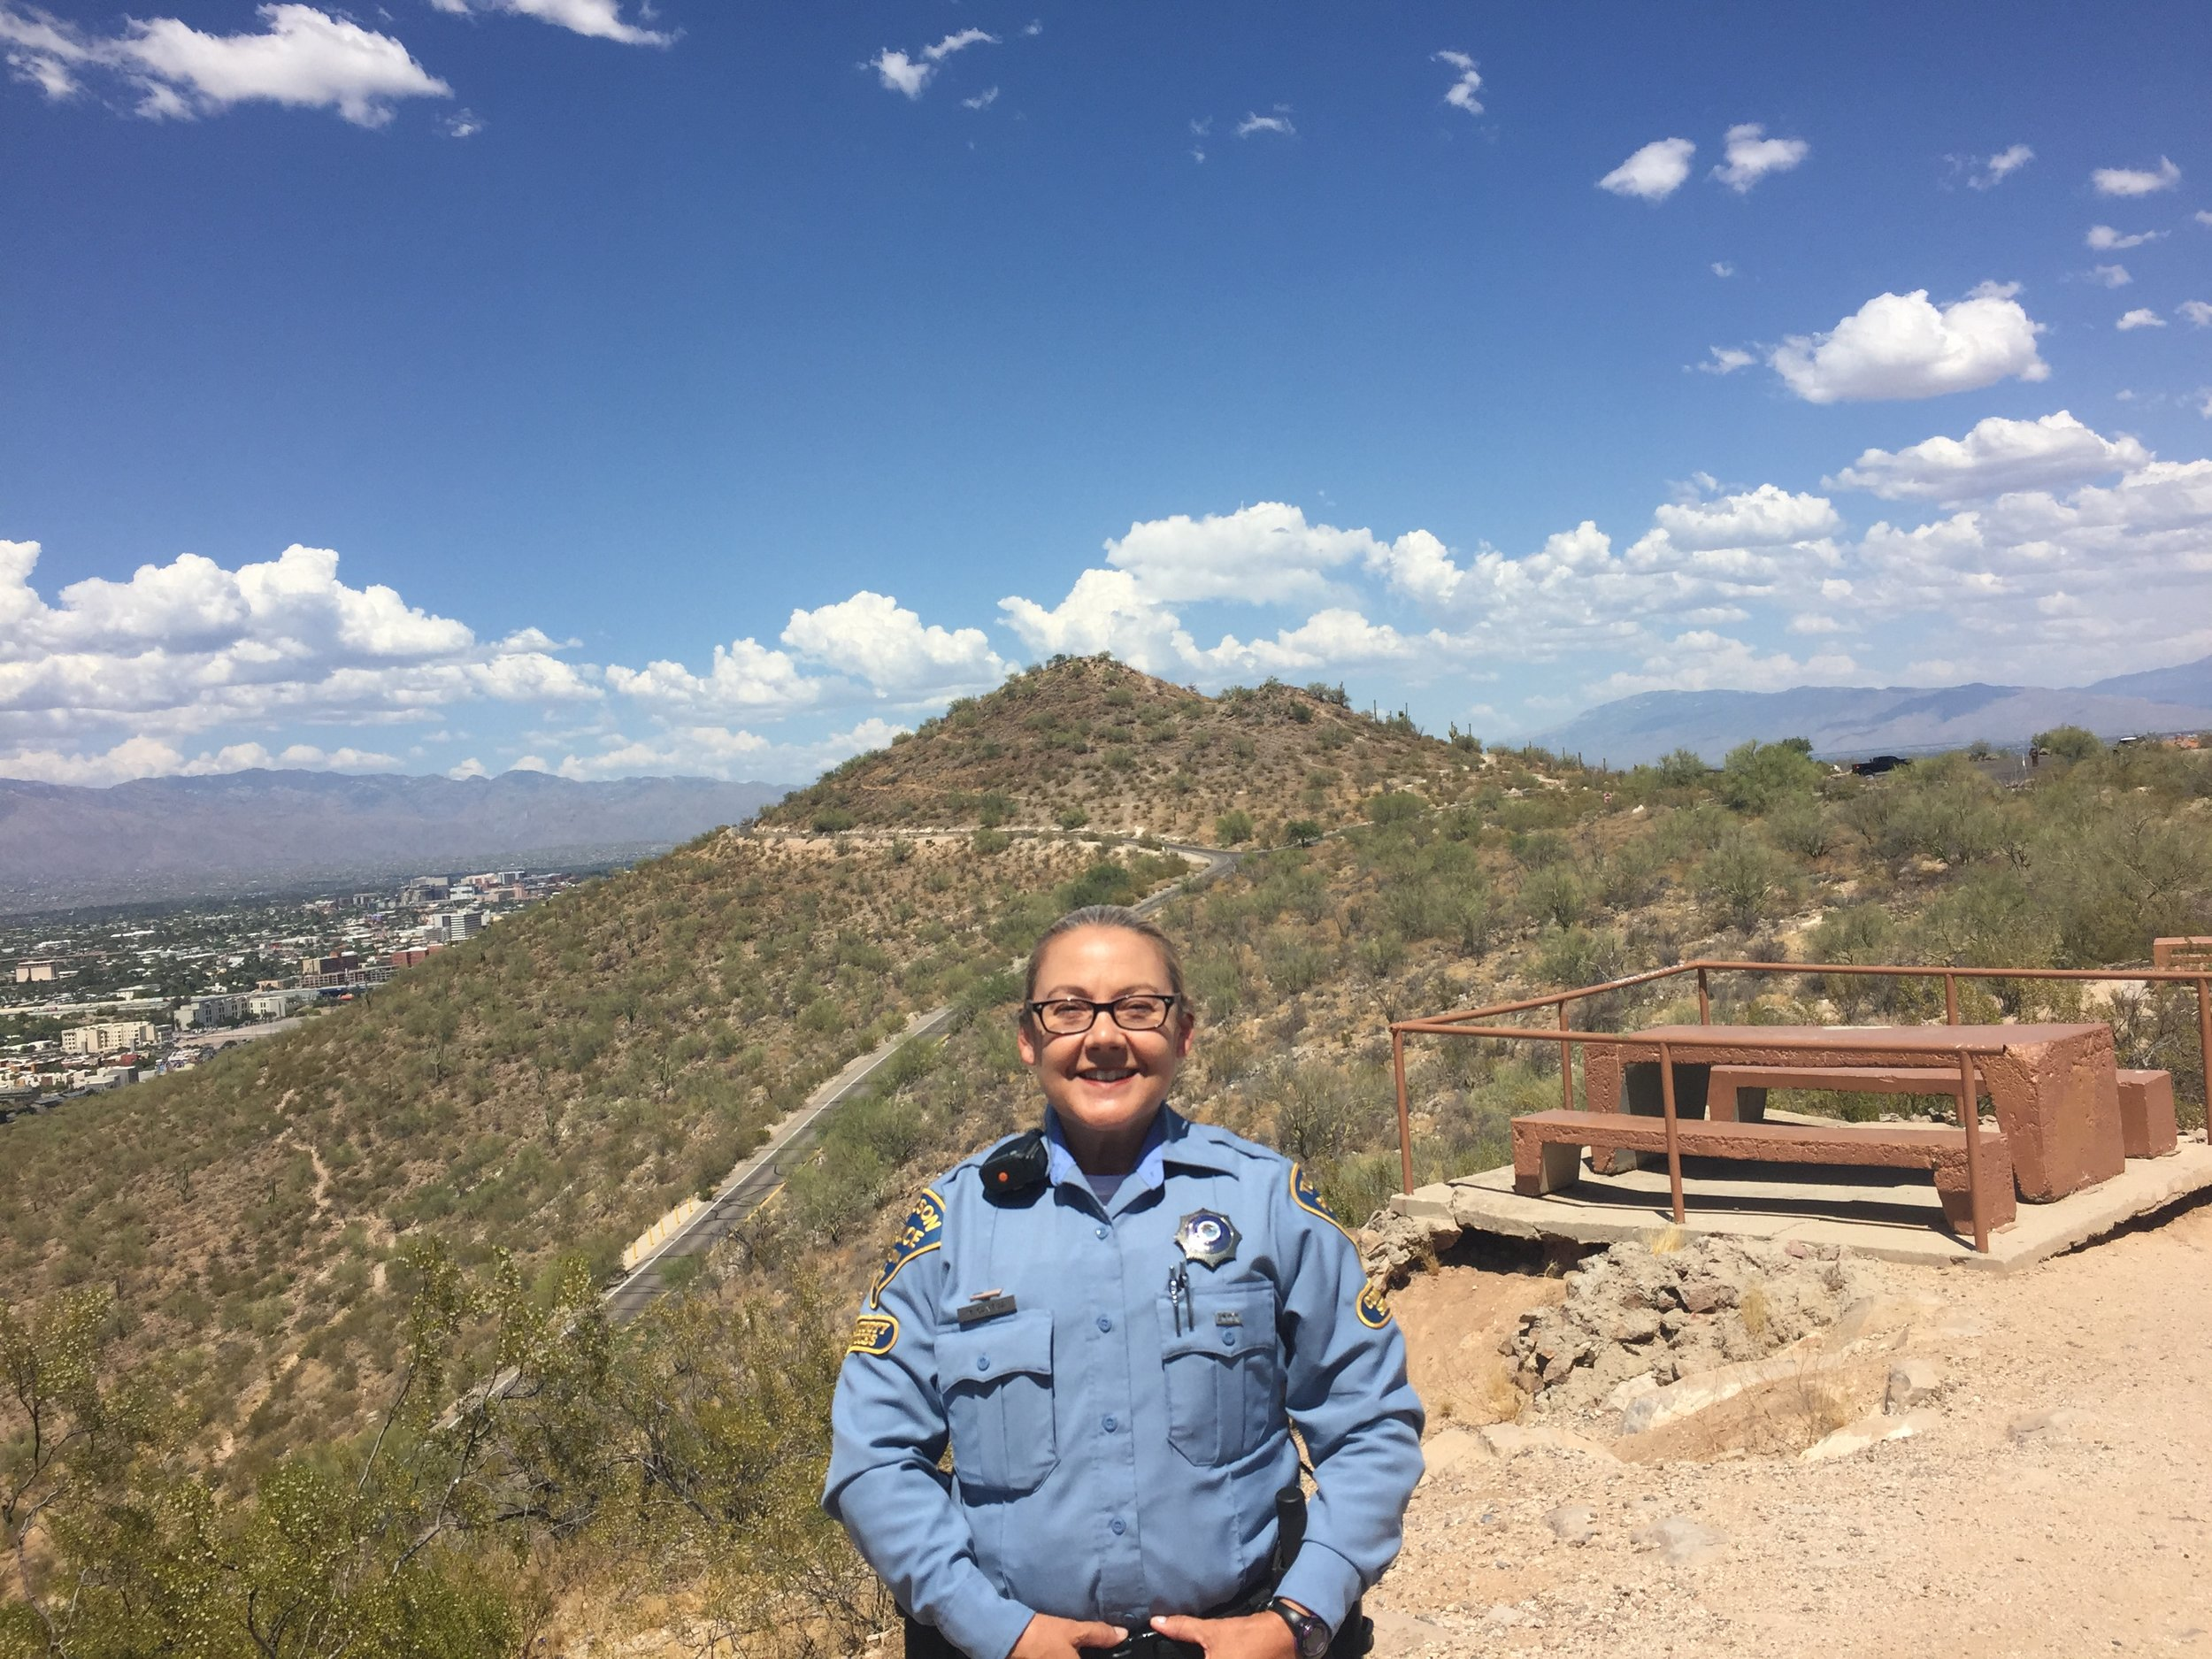 TPD Community Service Officer